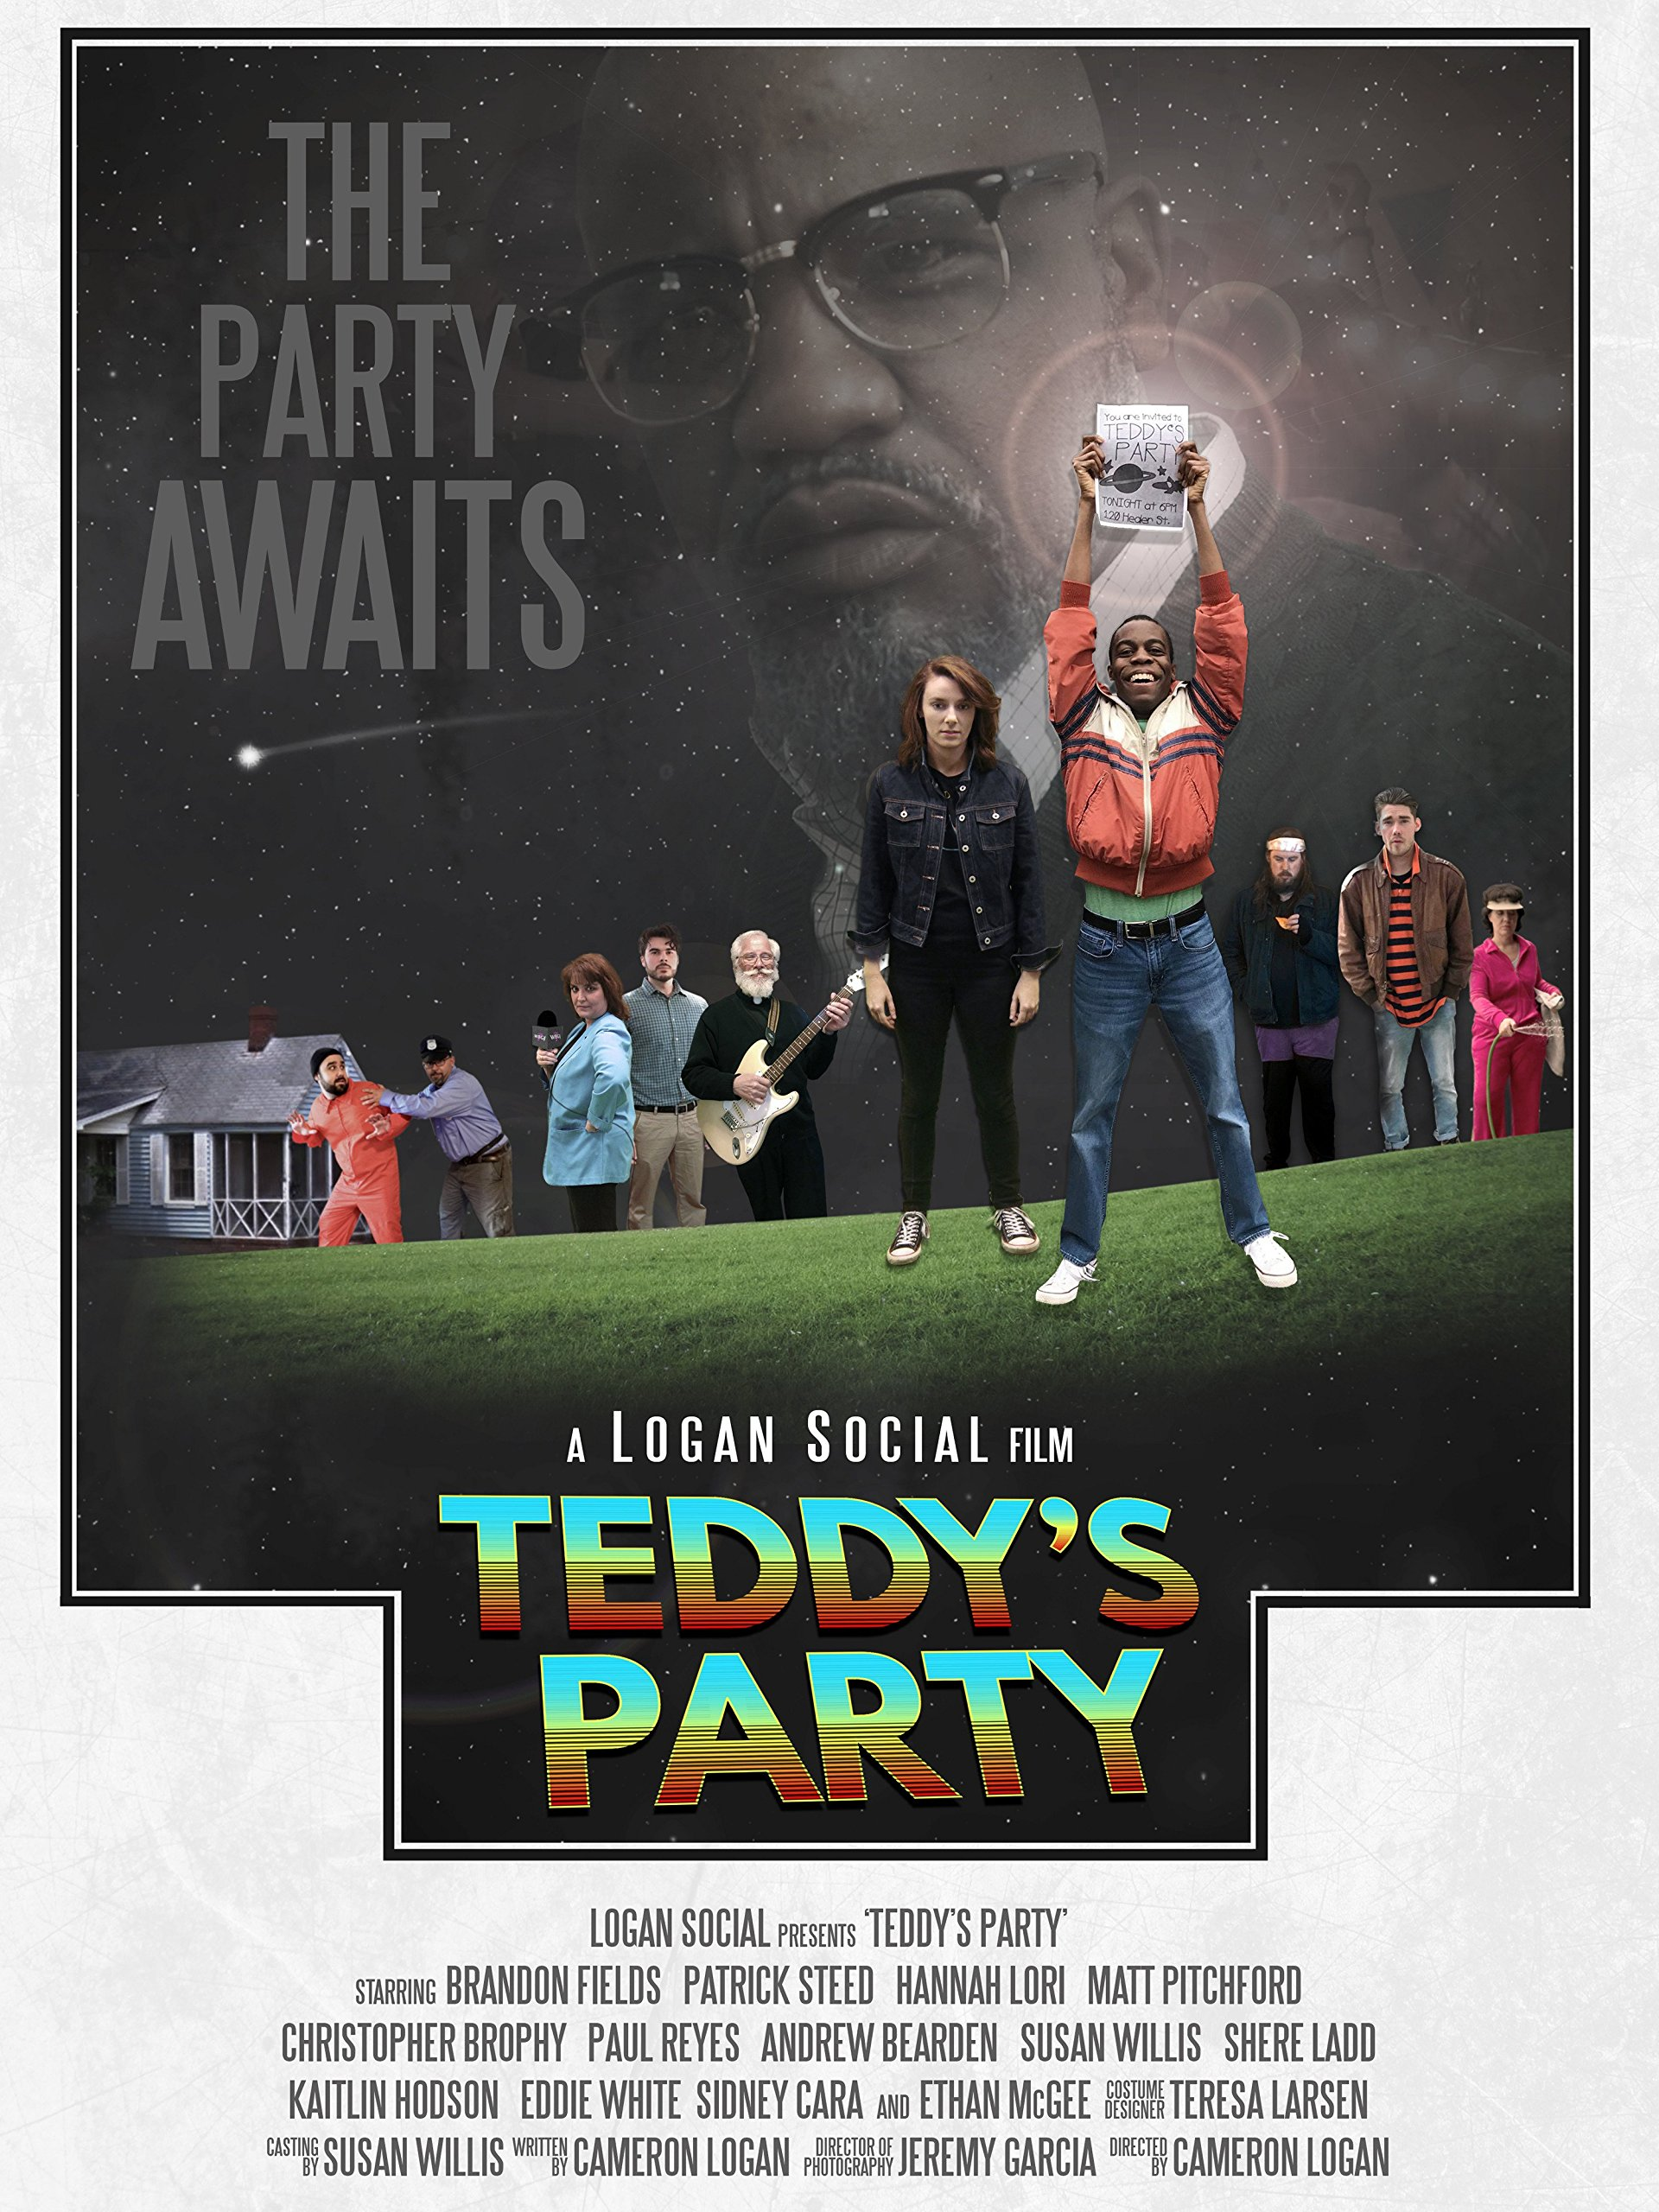 Teddy's Party